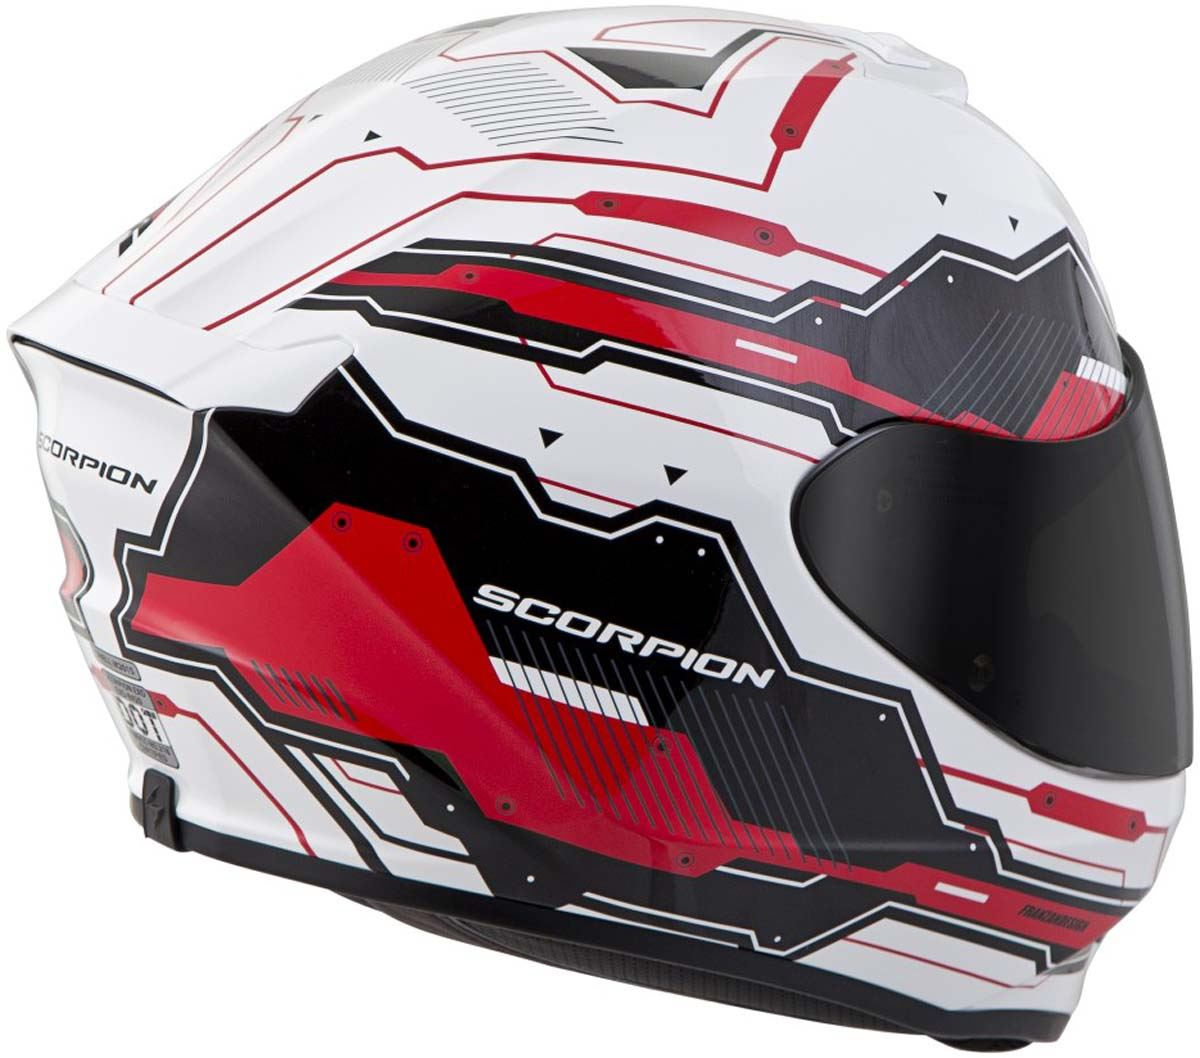 Scorpion-EXO-R420-Helmet-Removable-Liner-Air-Flow-DOT-SNELL-M2015-XS-2XL miniature 33